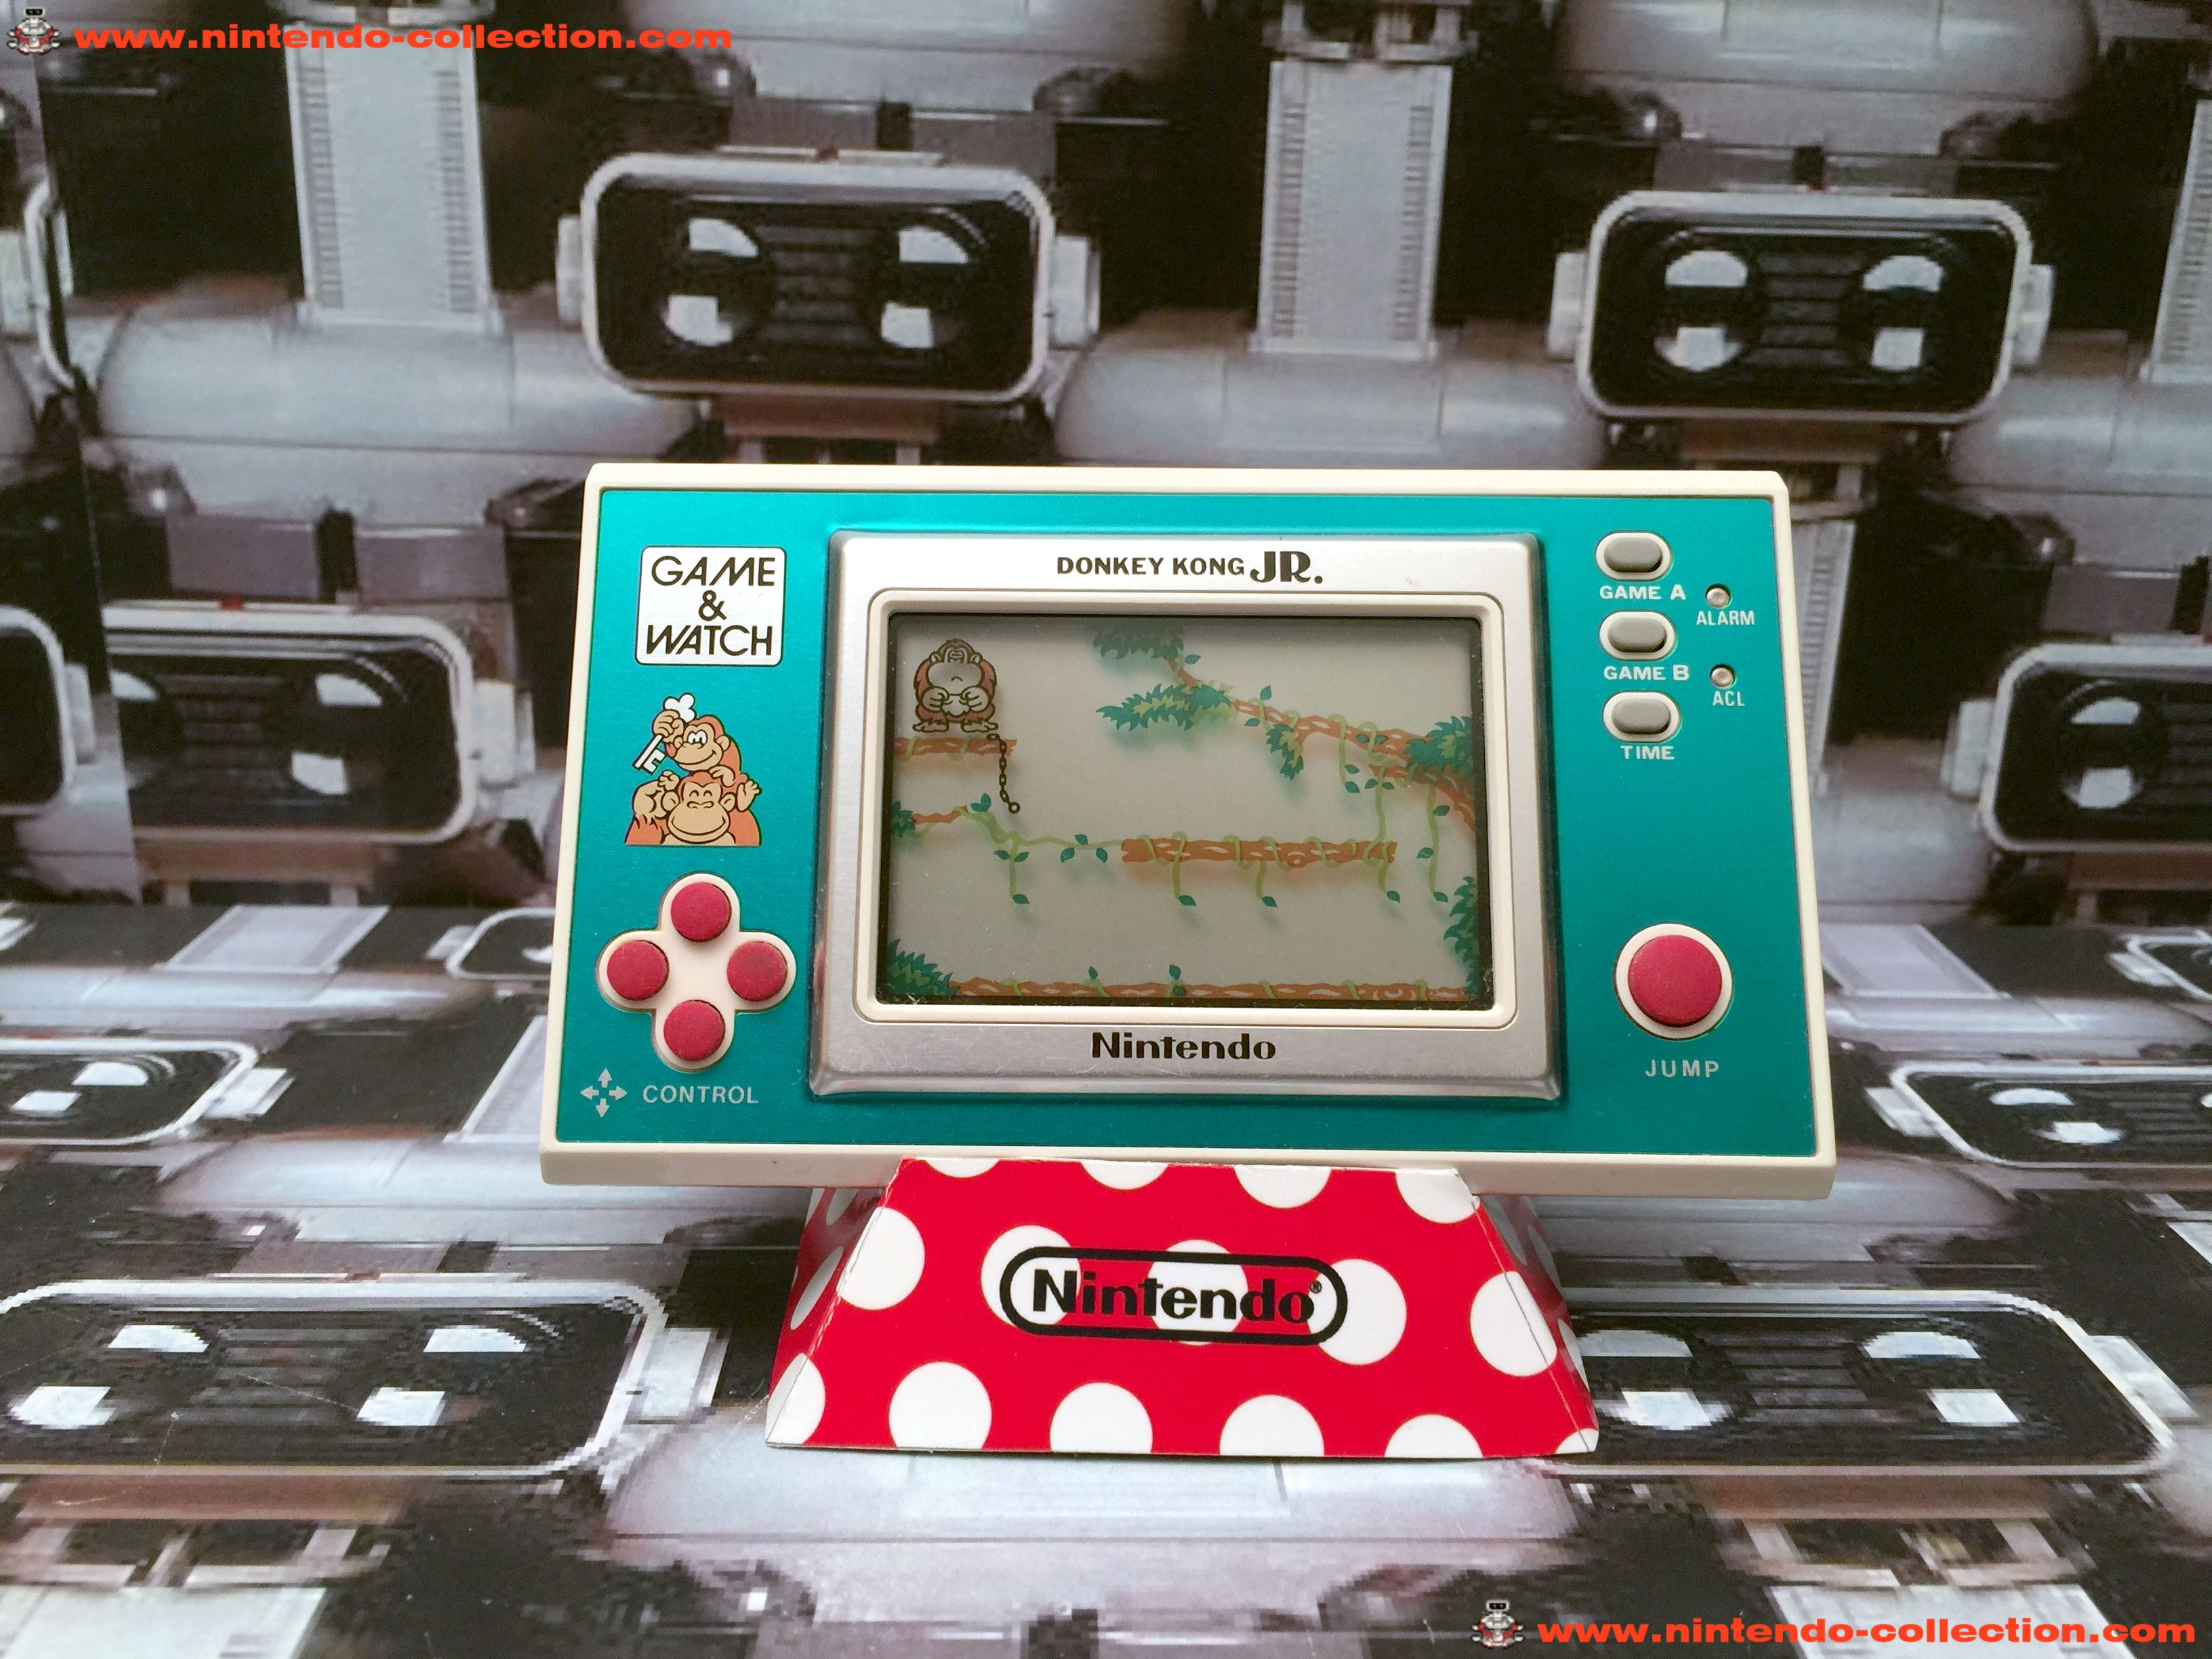 www.nintendo-collection.com - Game & Watch Wide Screen Donkey Kong JR.